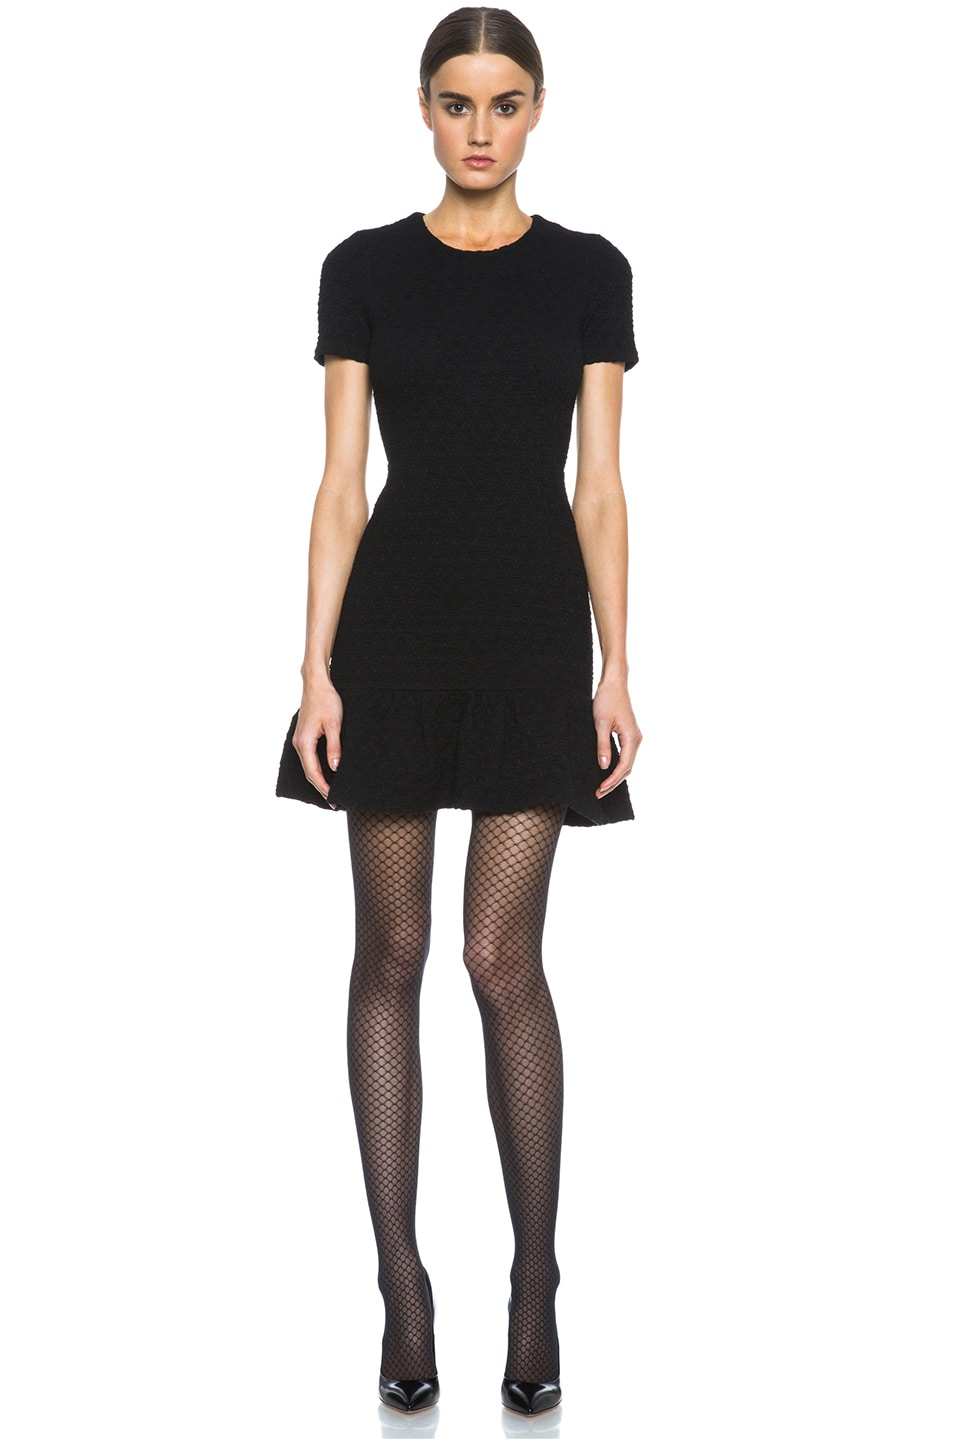 Image 6 of Wolford Iman Tights in Black